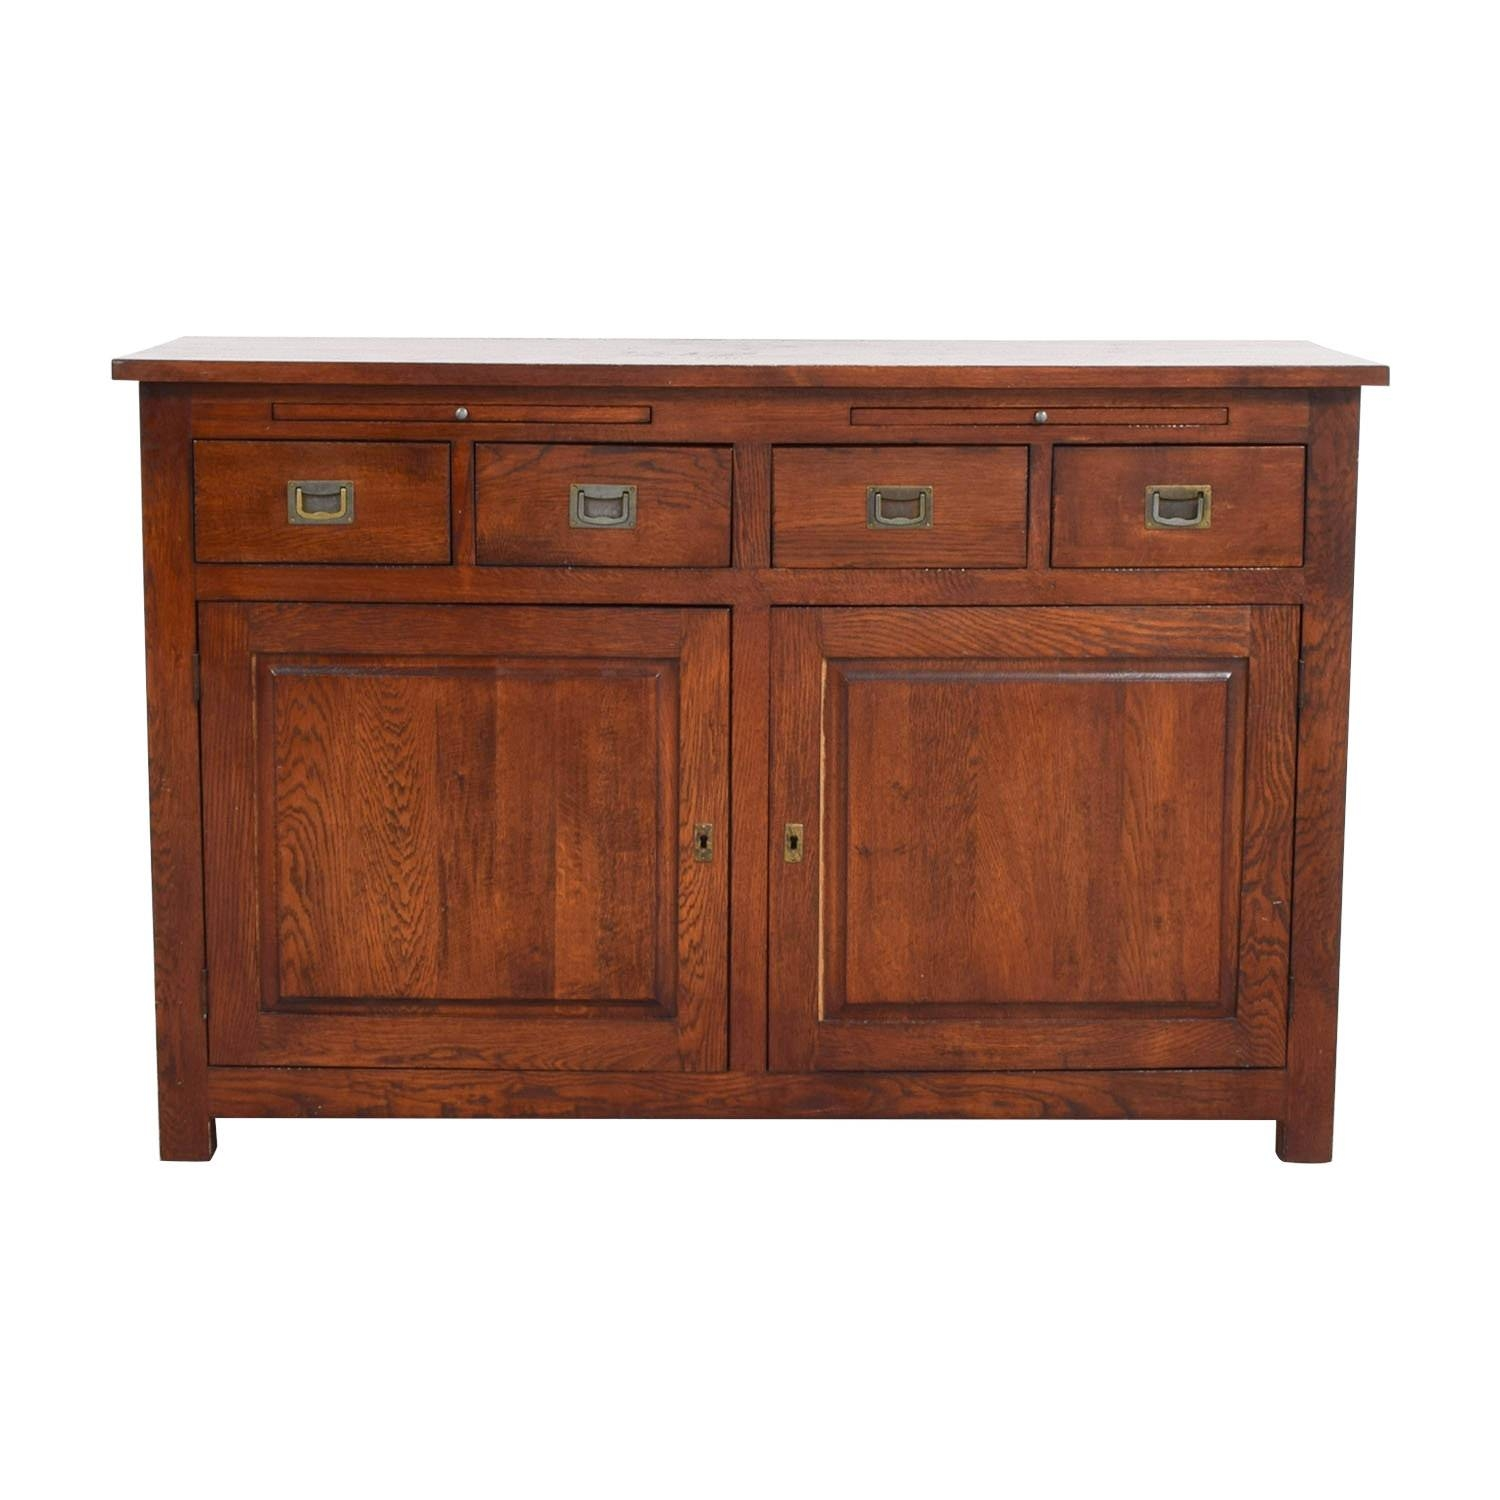 62% Off - Crate & Barrel Crate & Barrel Wooden Buffet / Storage within Crate And Barrel Sideboards (Image 3 of 15)